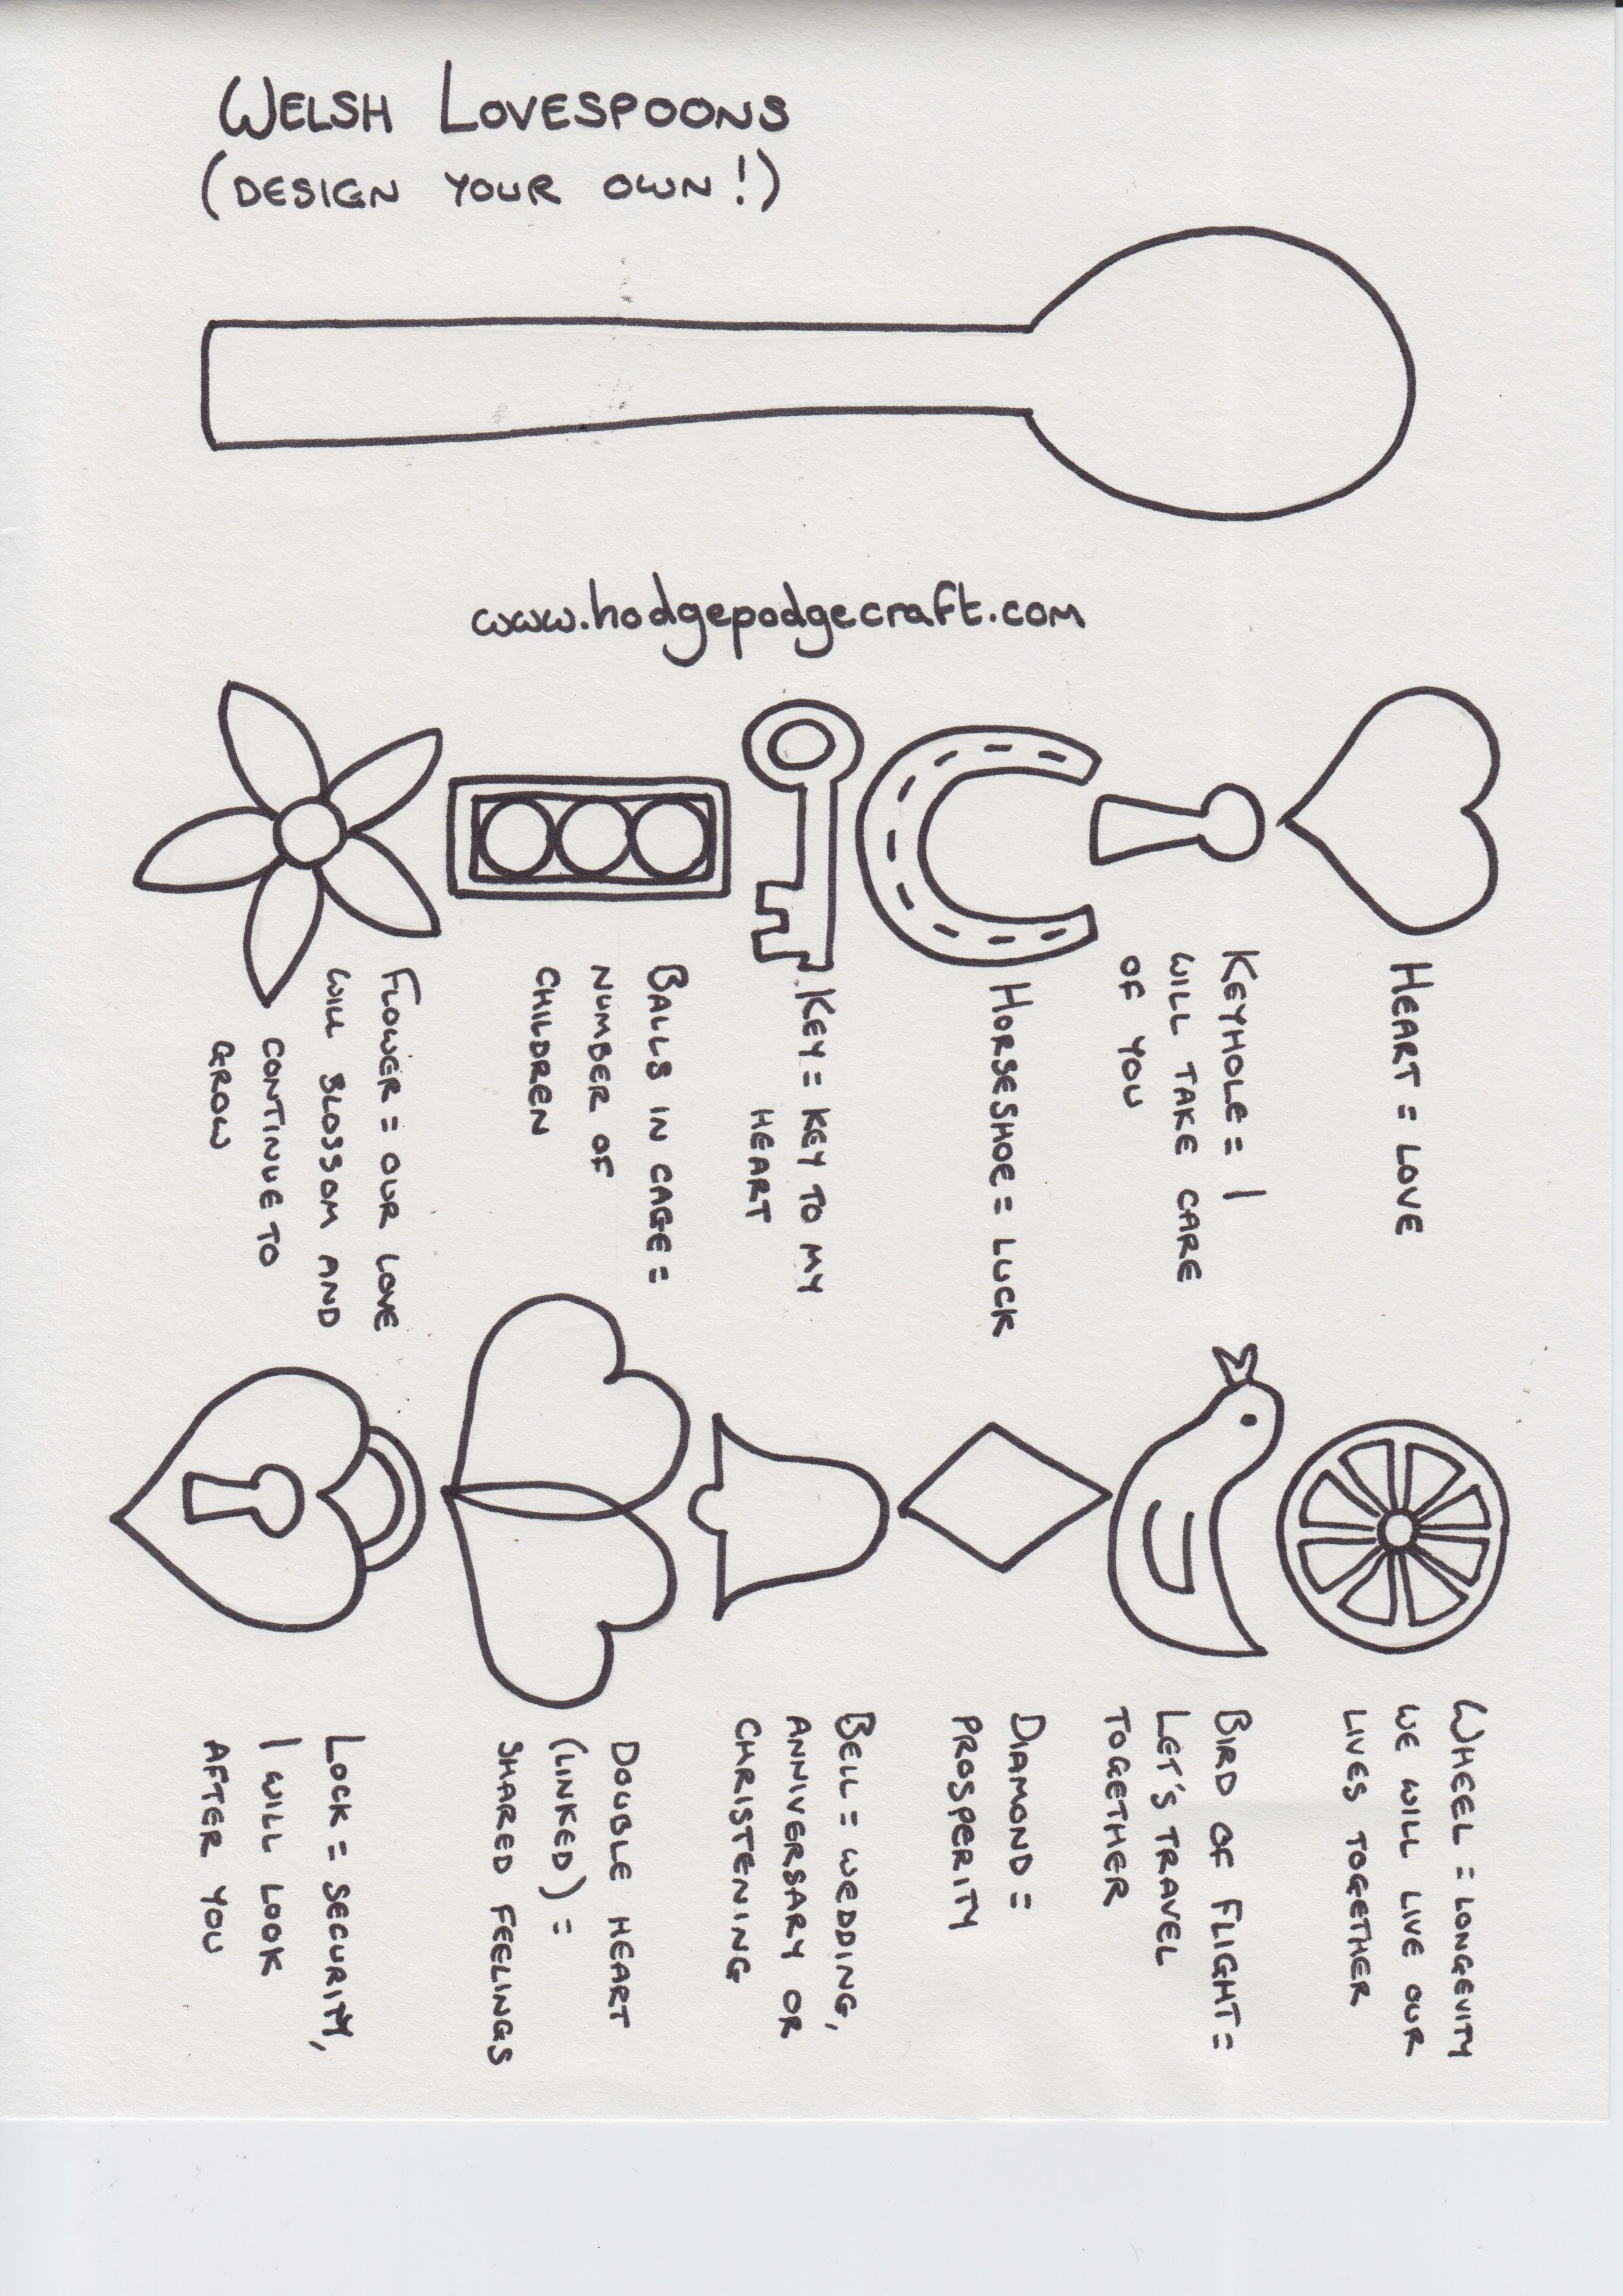 Design Your Own Welsh Lovespoon